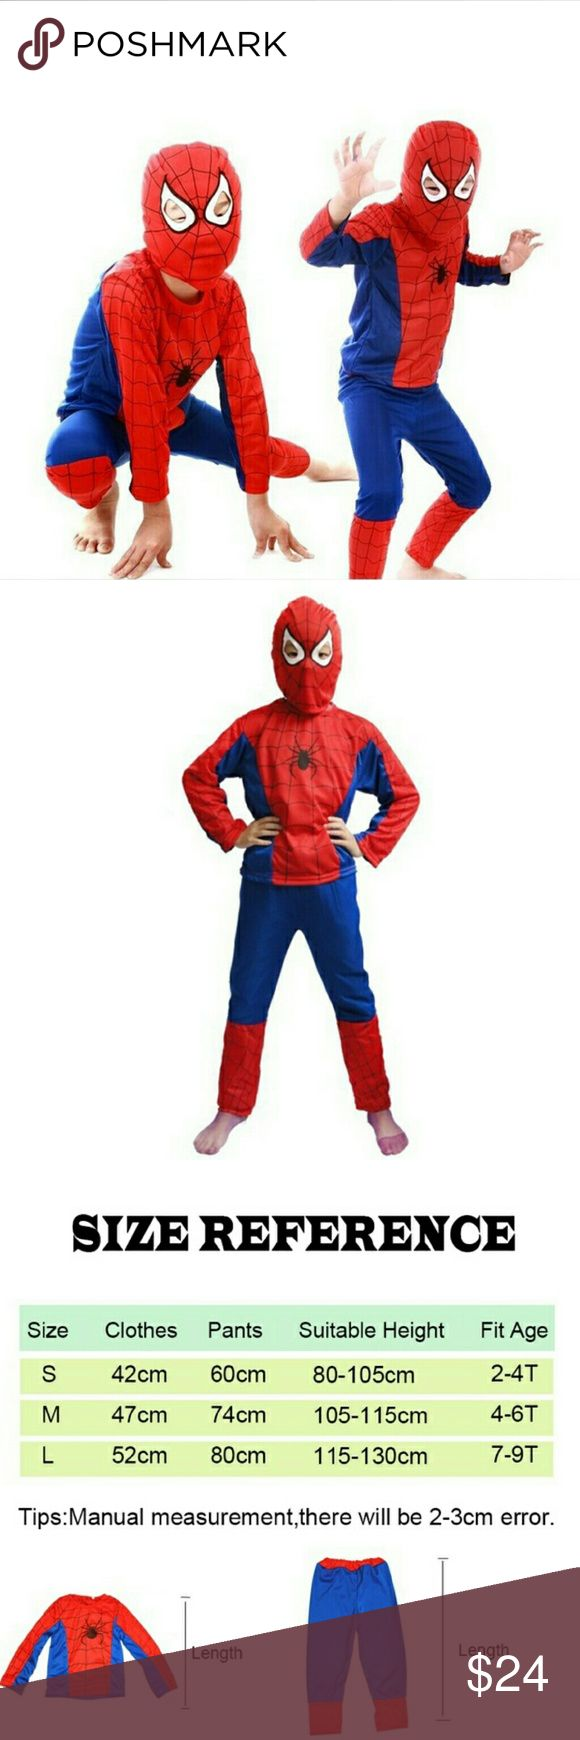 New Spiderman Costume Boys Sizes S, M & L 3 pc New Spiderman Costume Boys Sizes S, M & L 3 pc. Please see measurements. It is made with thin material to wear alone or over other clothes. Costumes Halloween